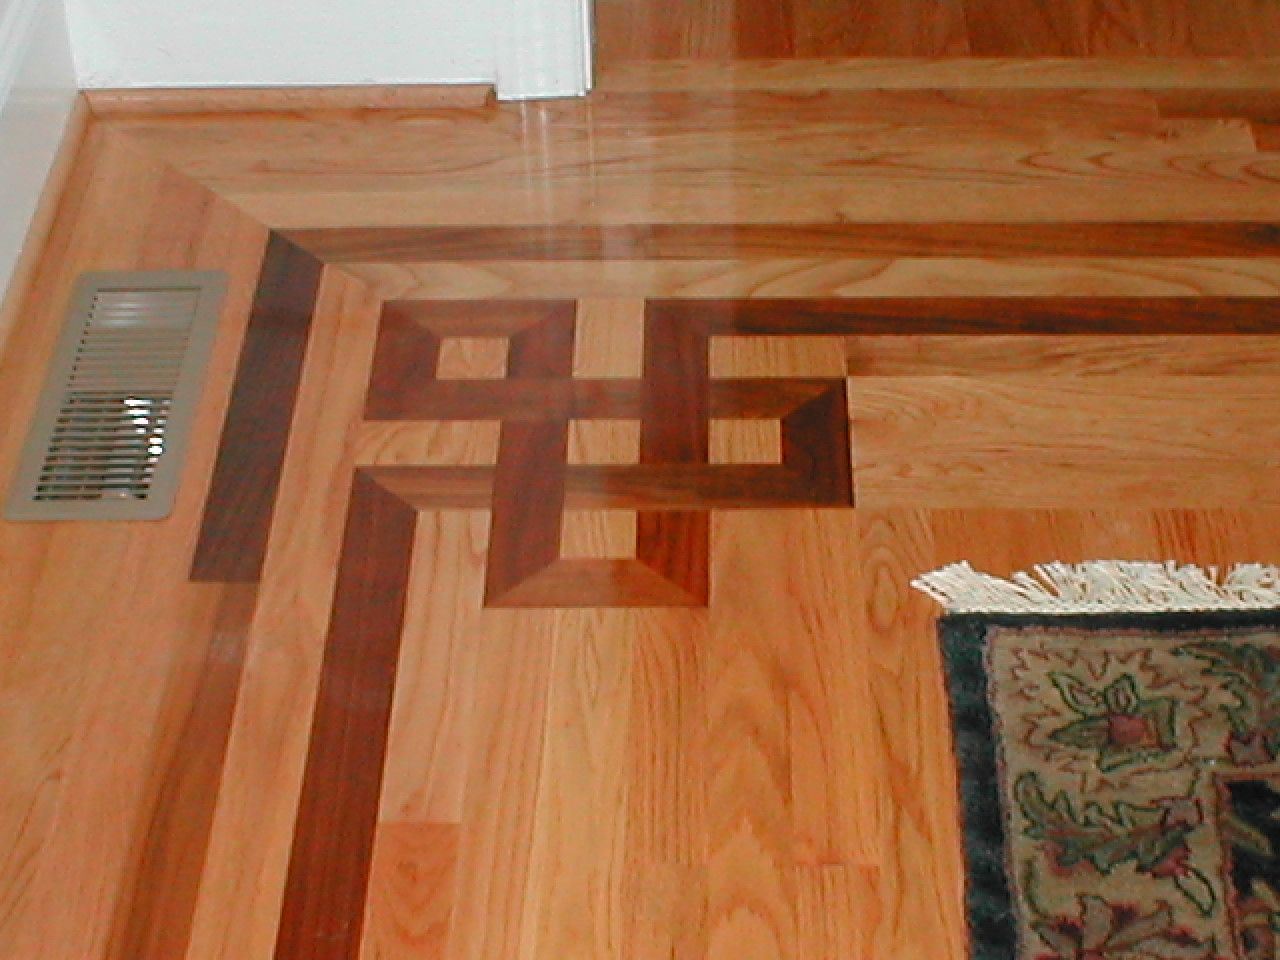 Wood Floor Designs And Patterns